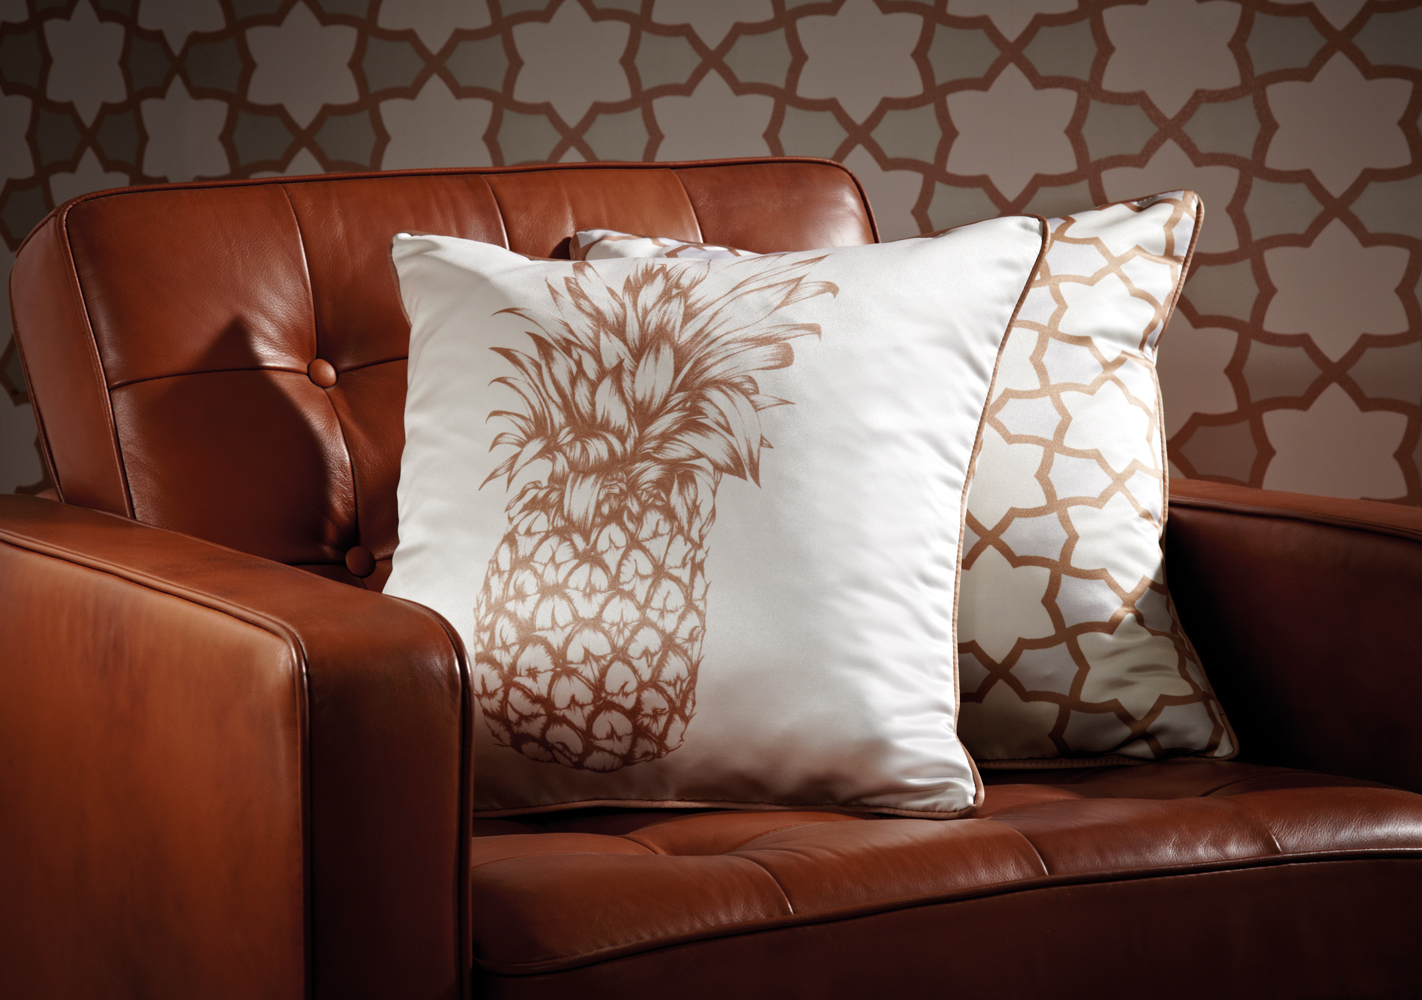 ARTHOUSE-Arthouse-Copacabana-Gold-Cushion-1770288-1 Pineapple Decor: Tips for Decorating Your Home with Southern Hospitality